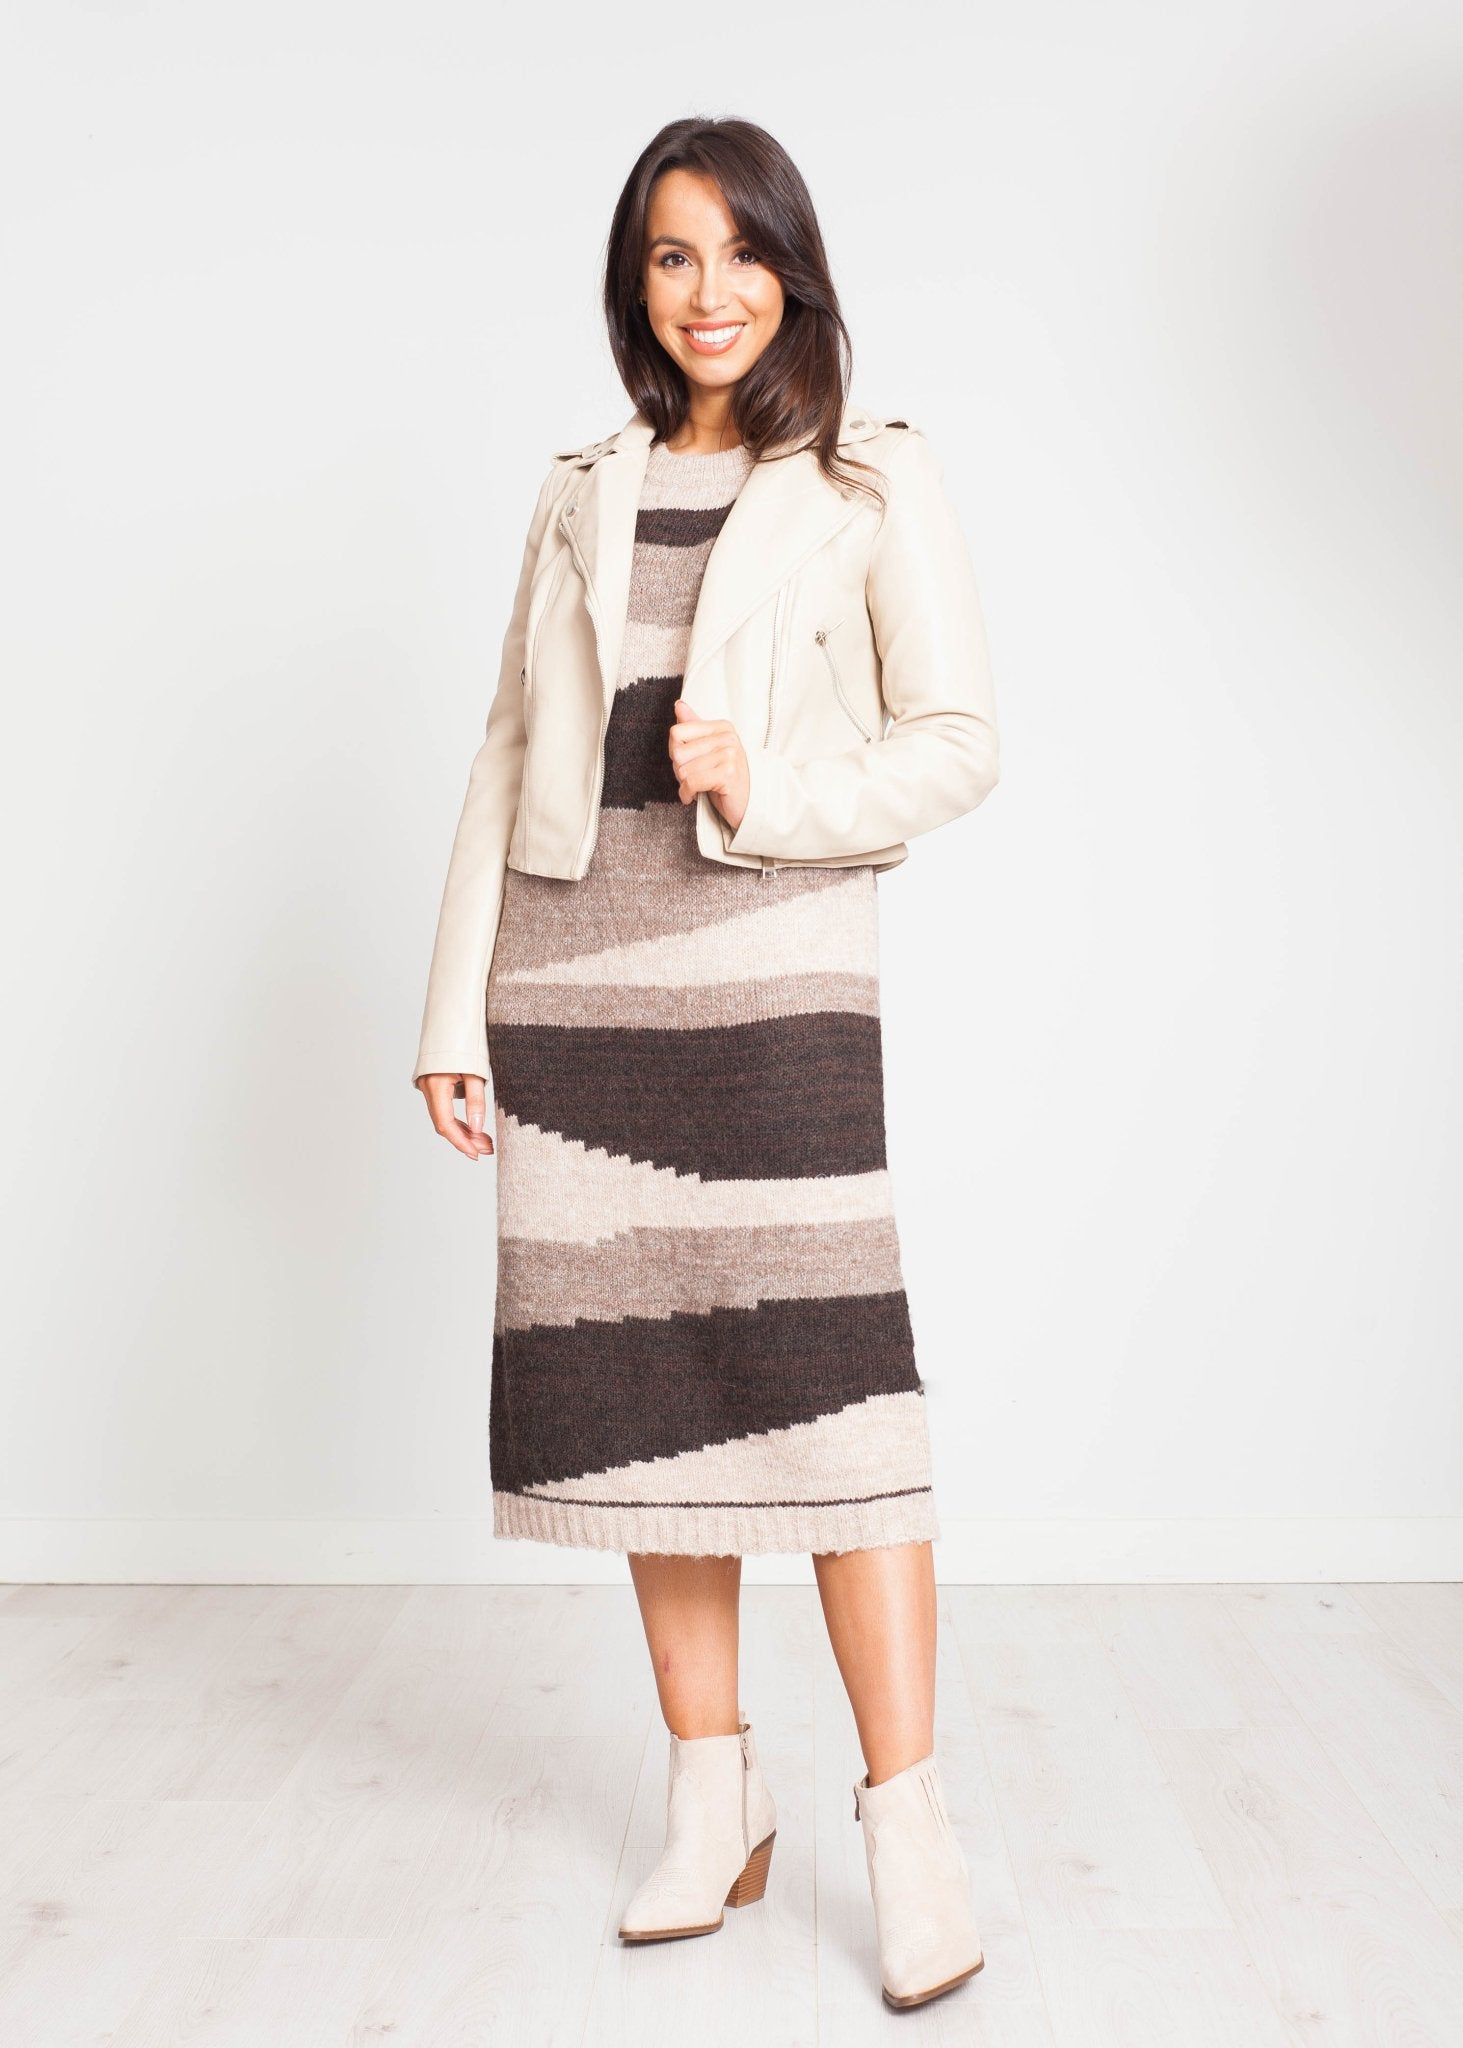 Emilia Jumper Dress In Brown Mix - The Walk in Wardrobe